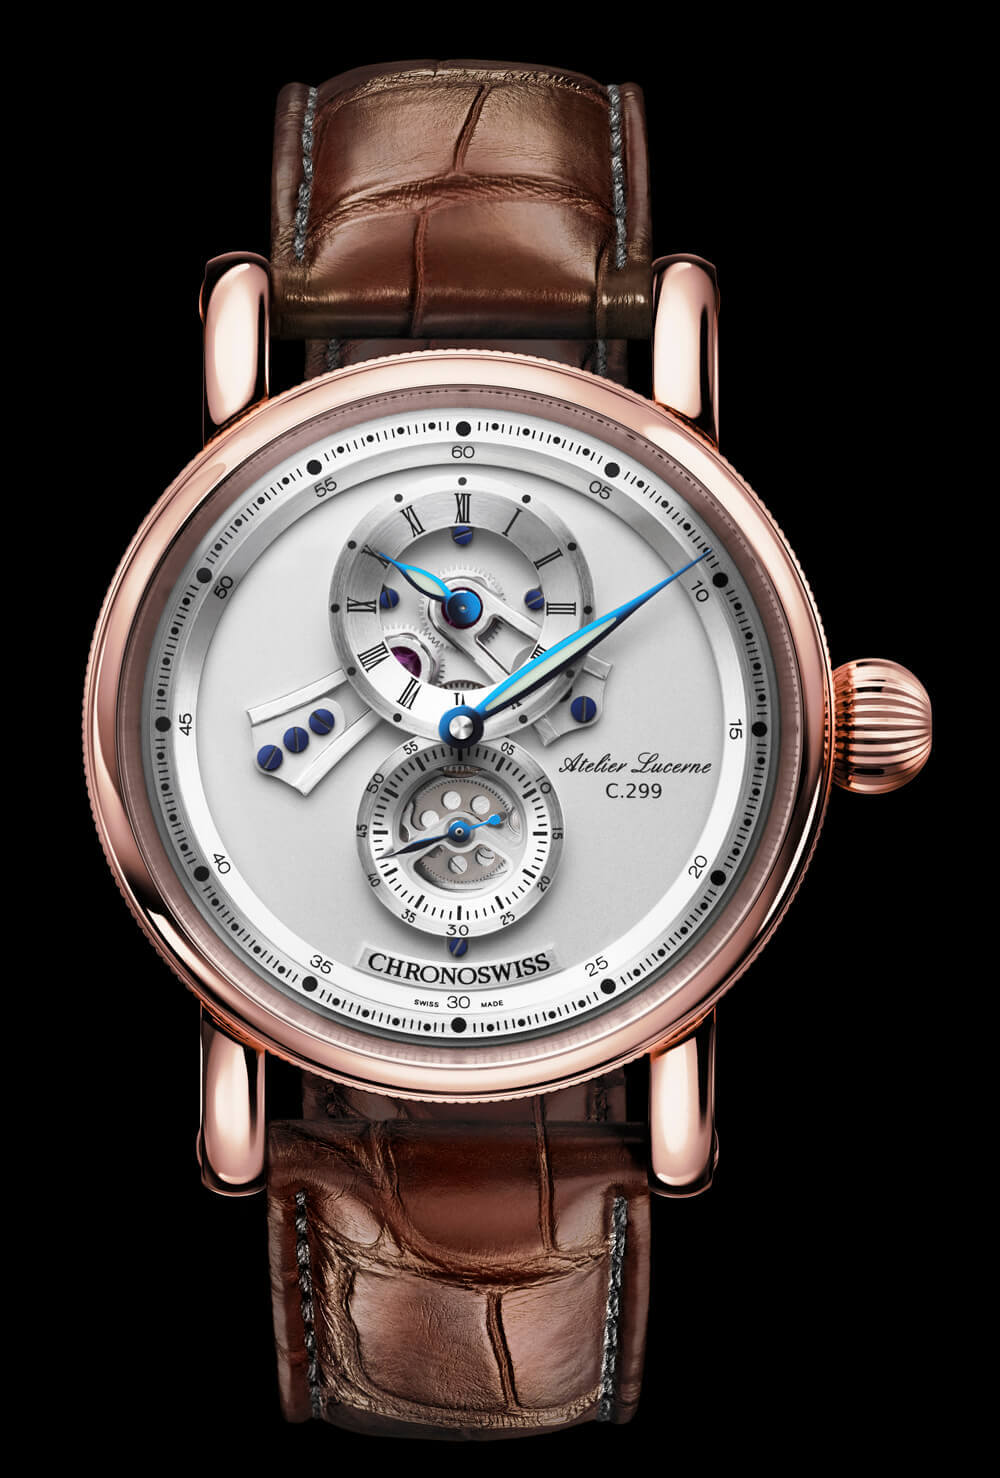 Oliver Ebstein, Chronoswiss